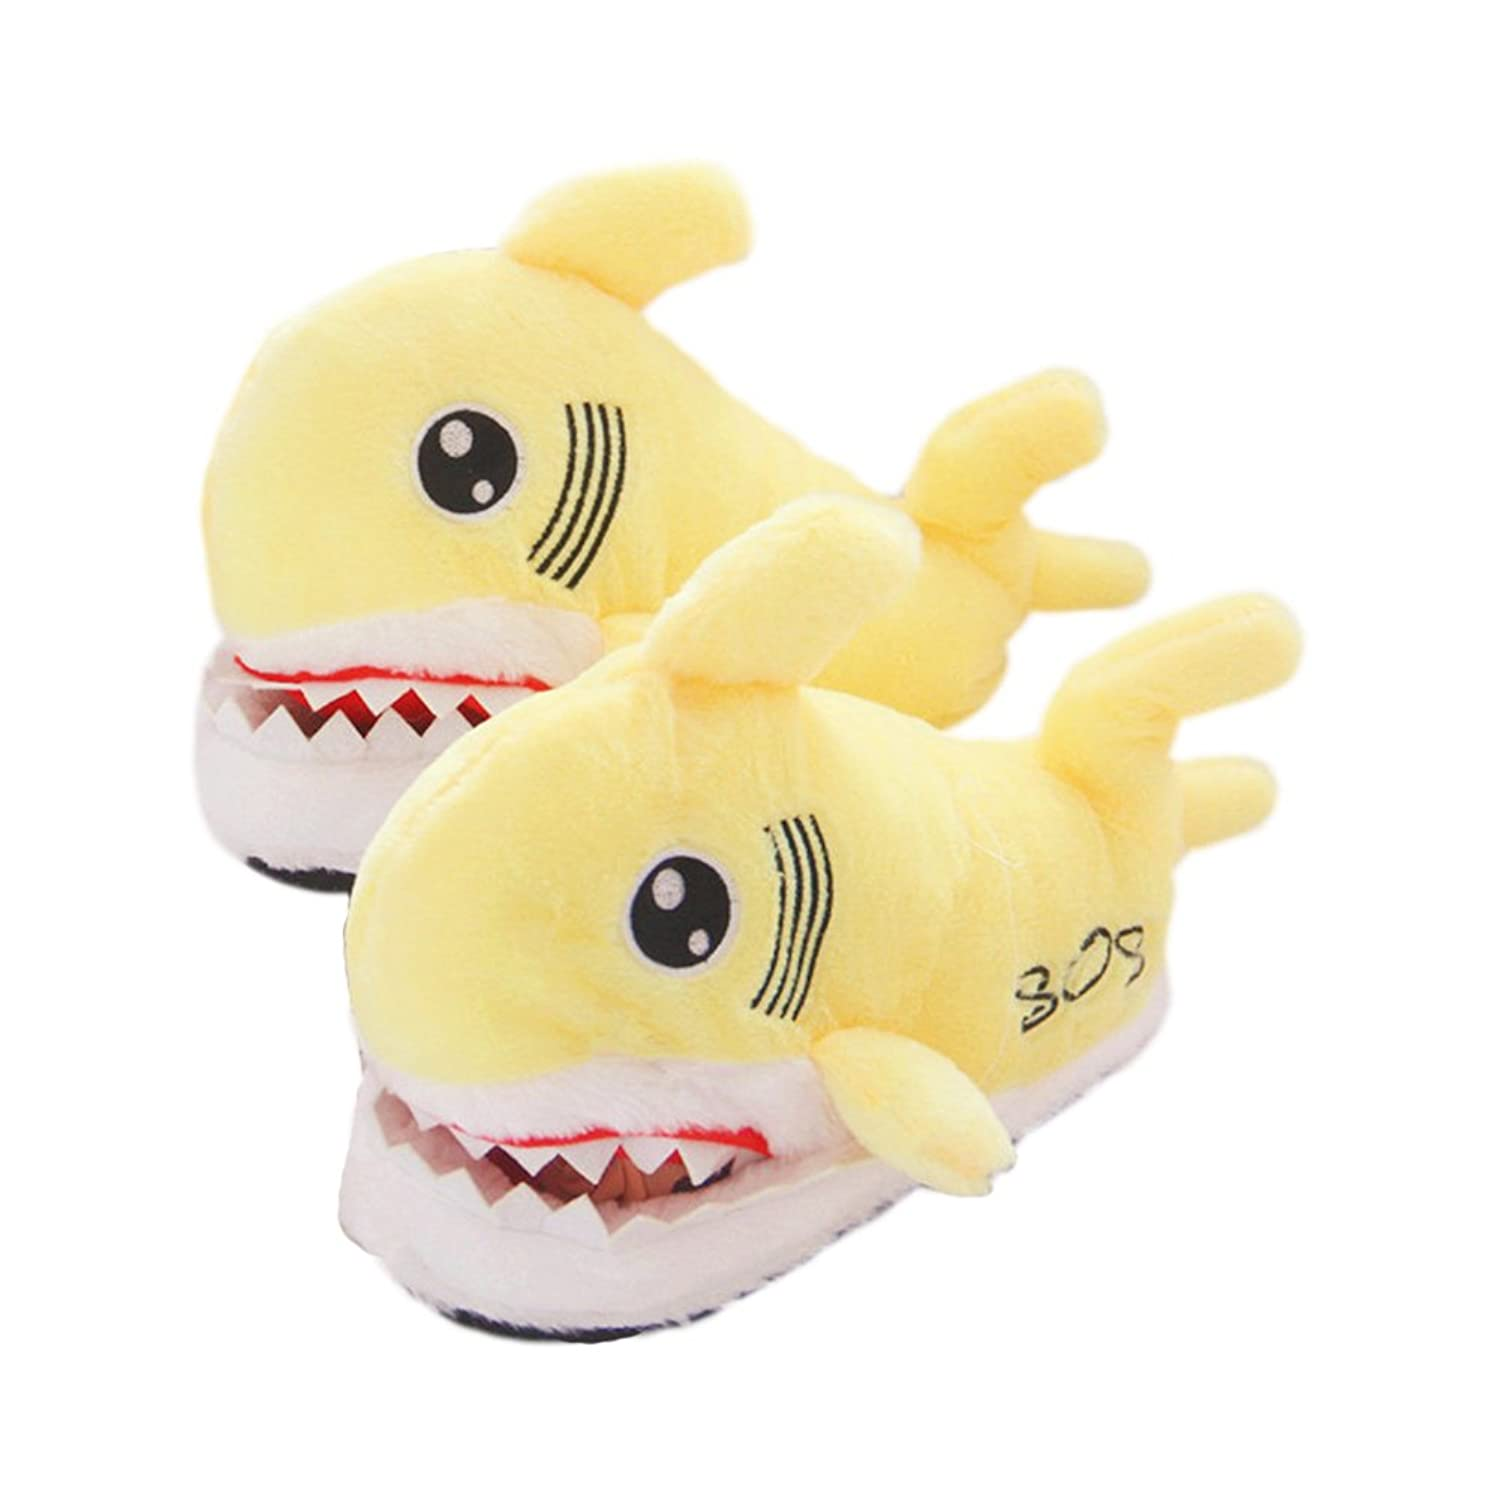 ACTLATI Kawaii Cartoon Shark Women Girls Home Shoes Soft Cute Animal Anti-slip House Slippers